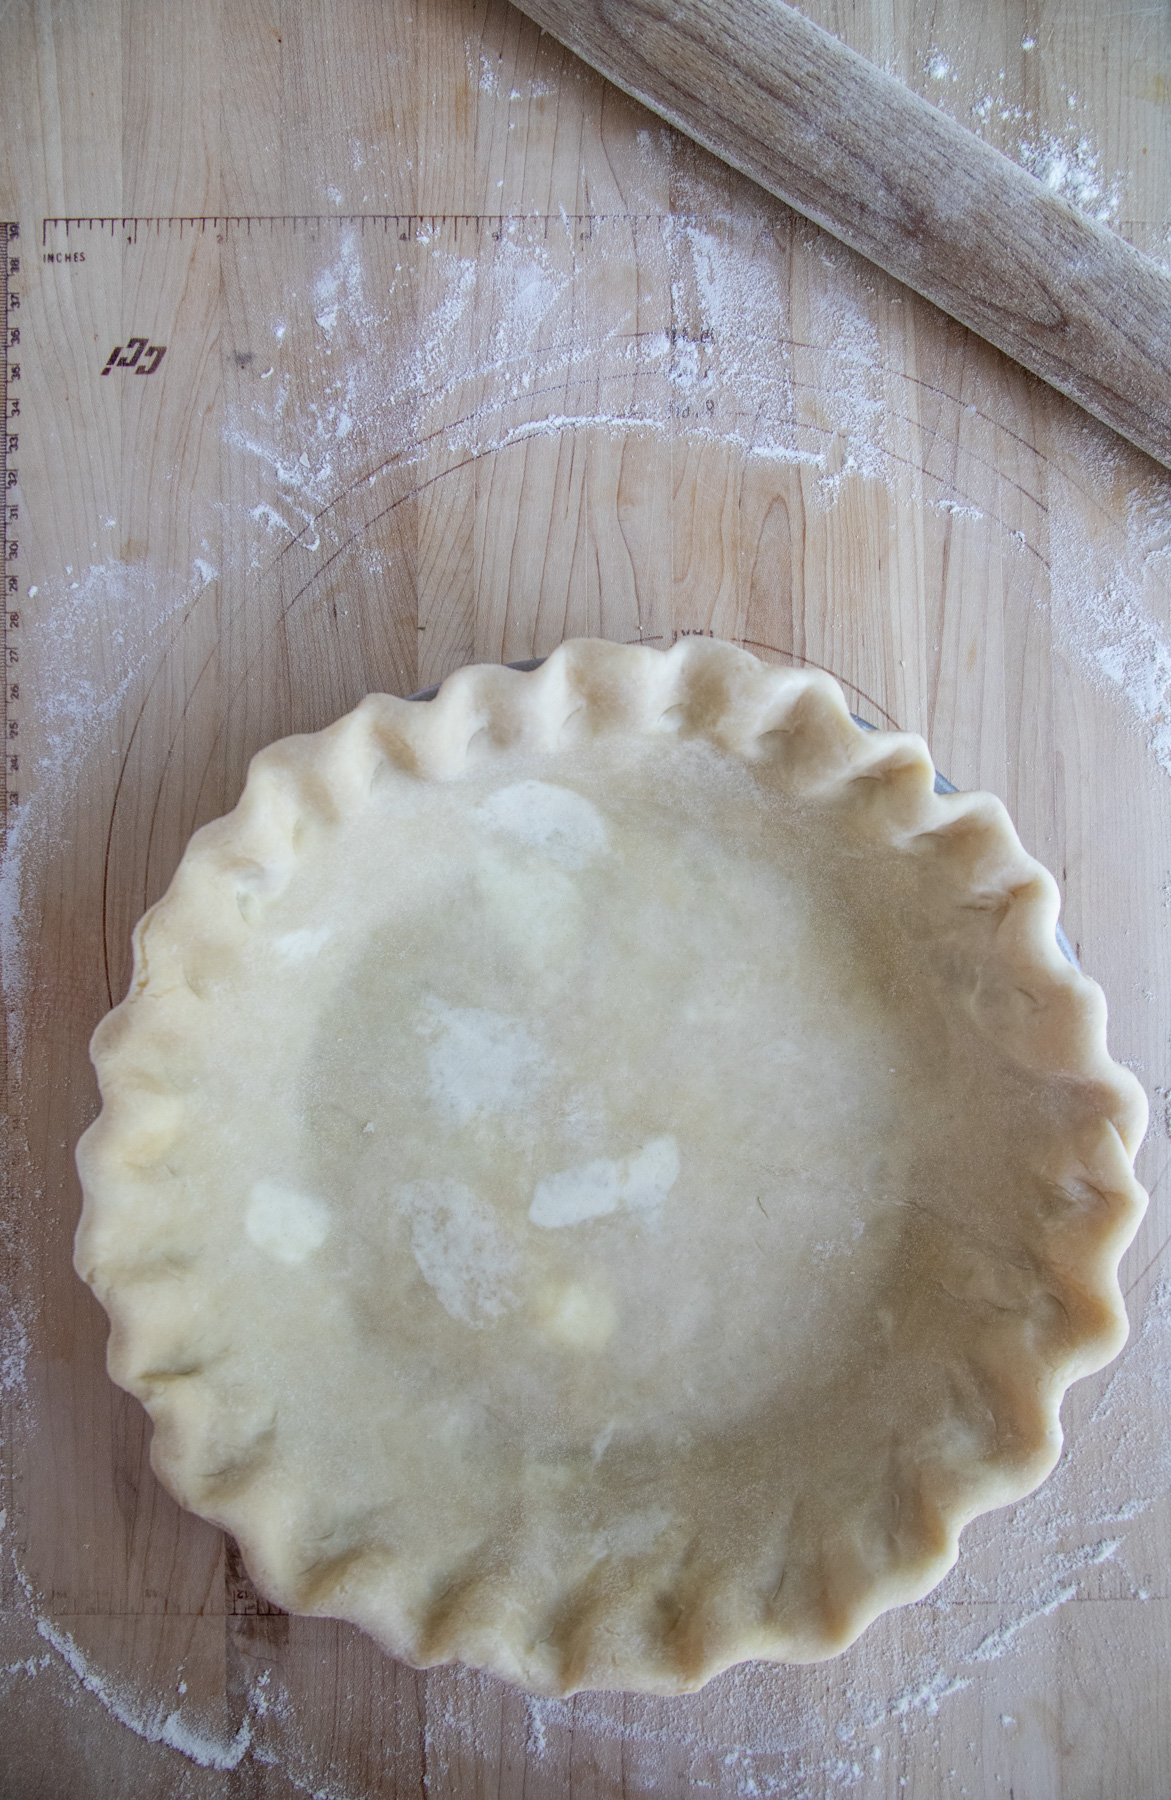 Pie dough in the pie pan with crimped edges